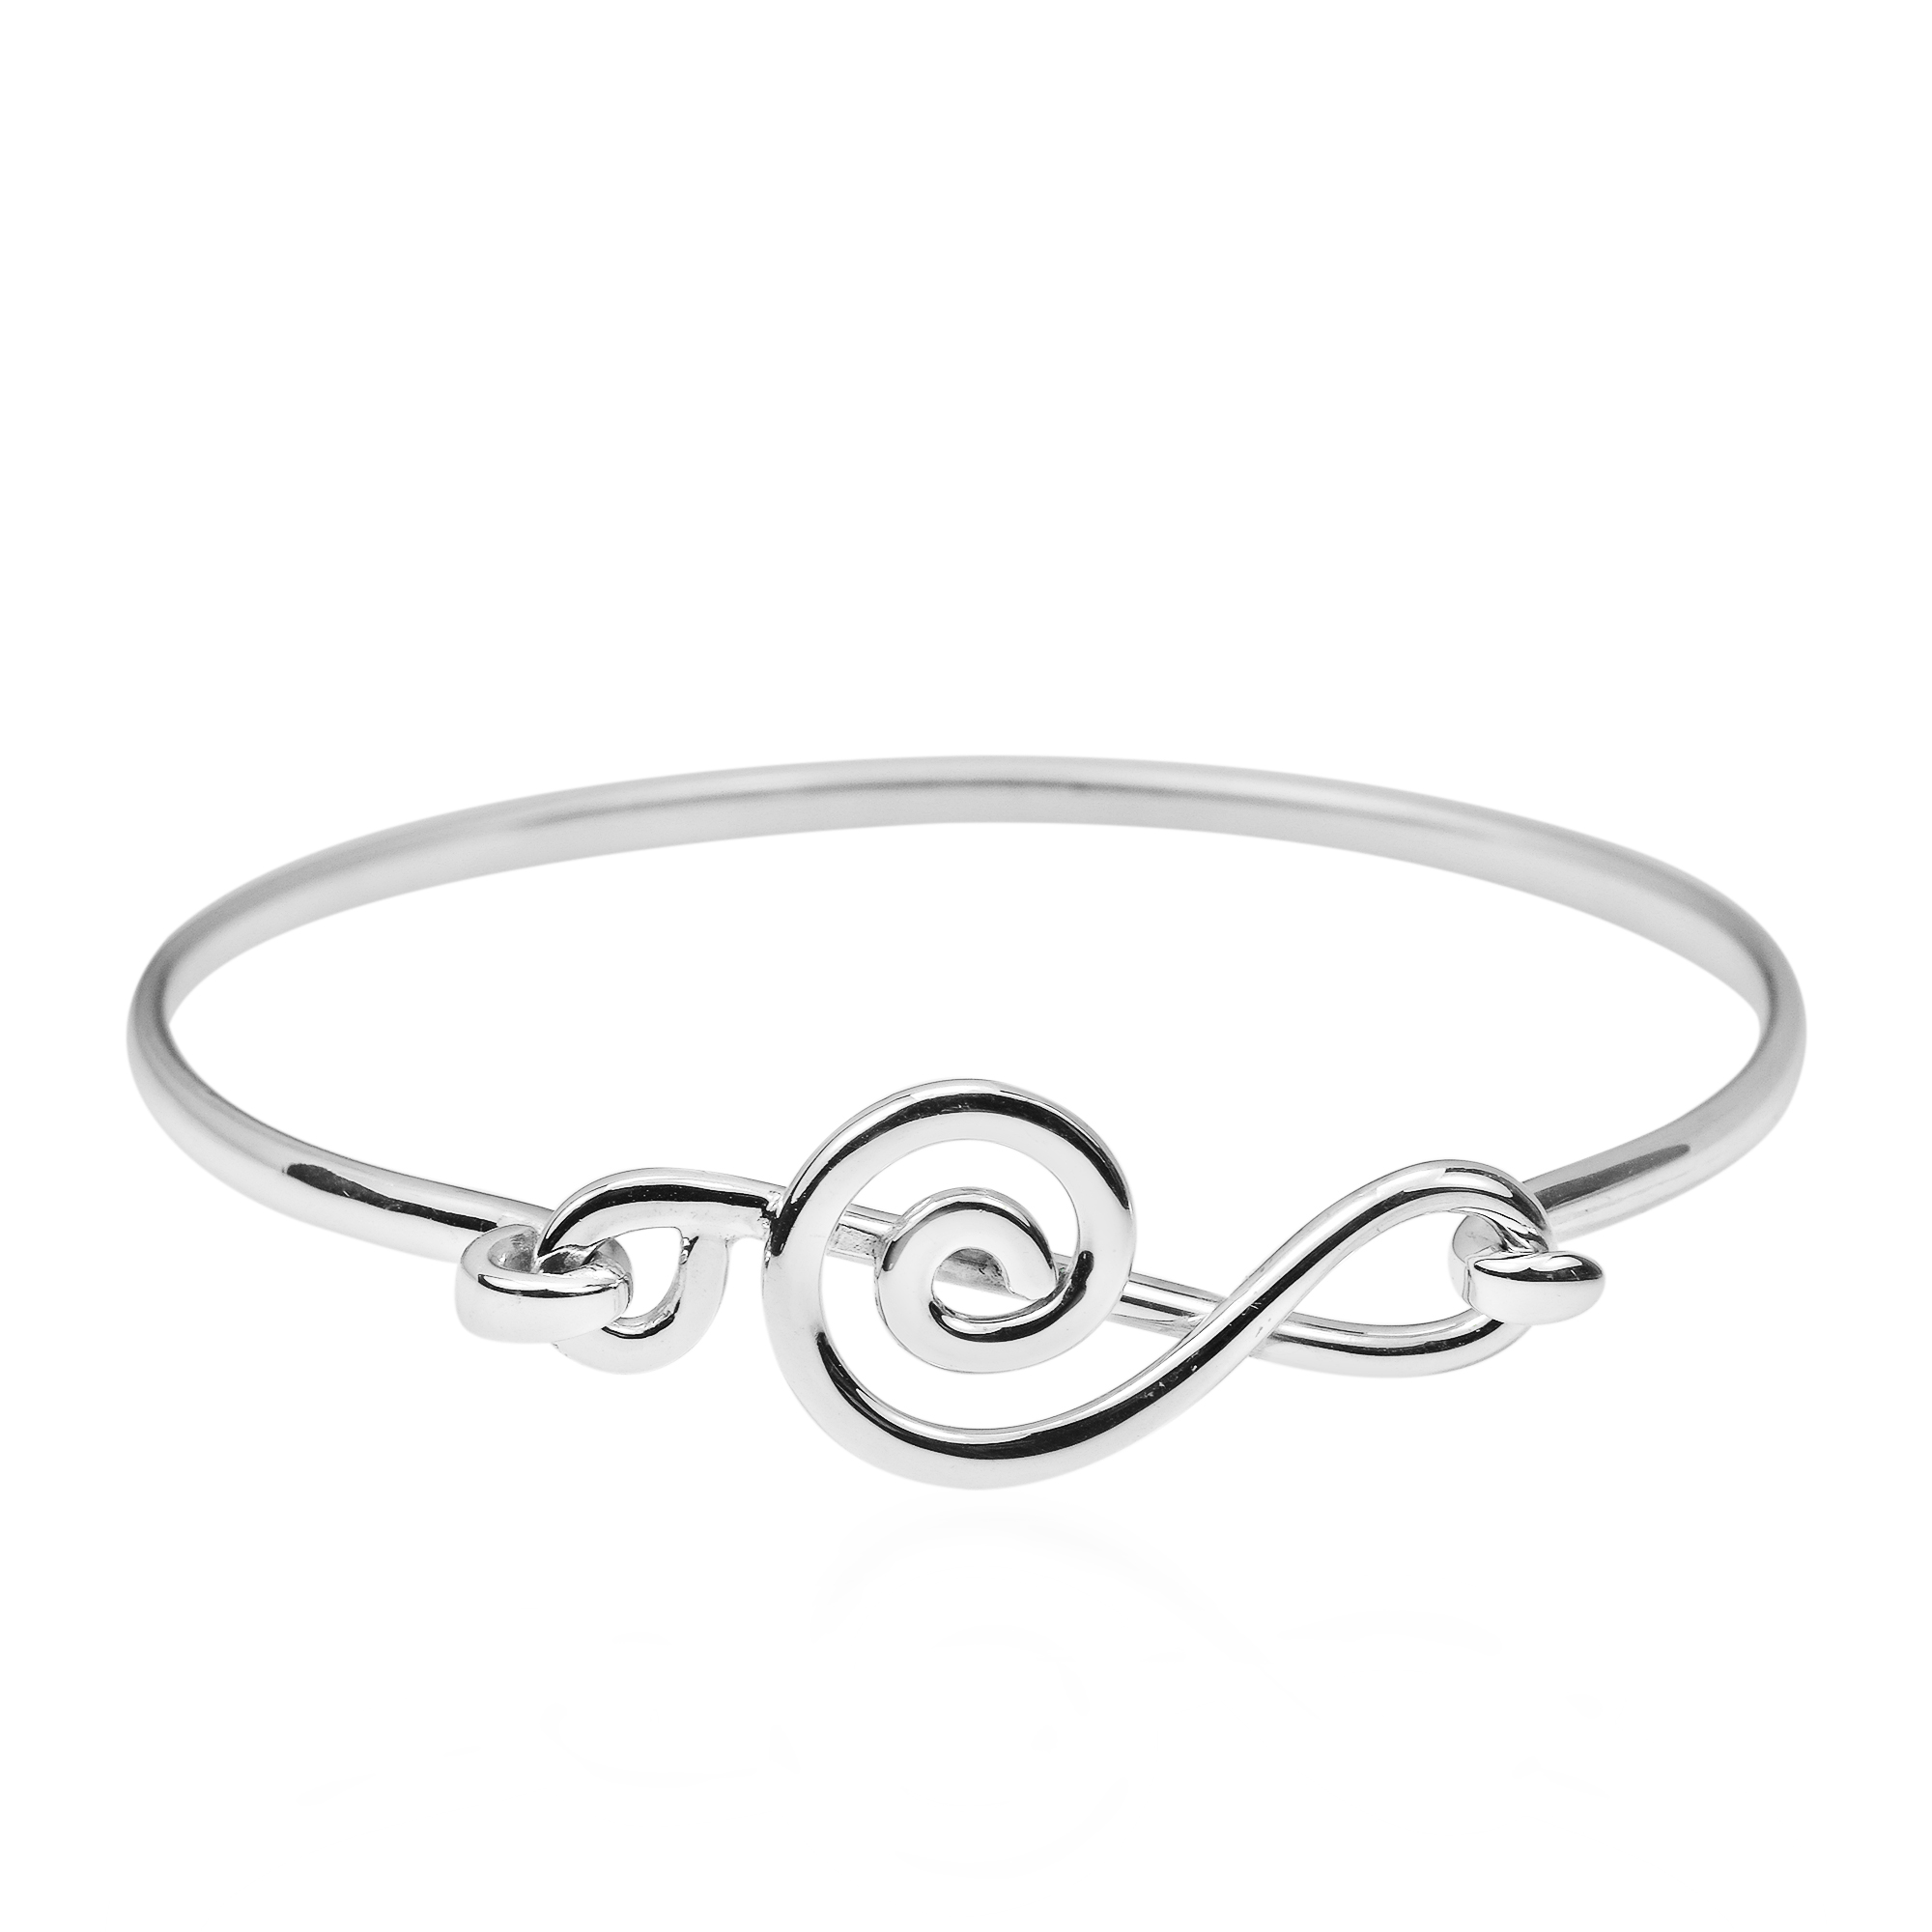 pc turtle details bracelet amazing cuff designer up silver row an products has style her come and balinese a bangles design bracelets stylish bangle plain years sterling yuu after of this features with in thai pefecting sense